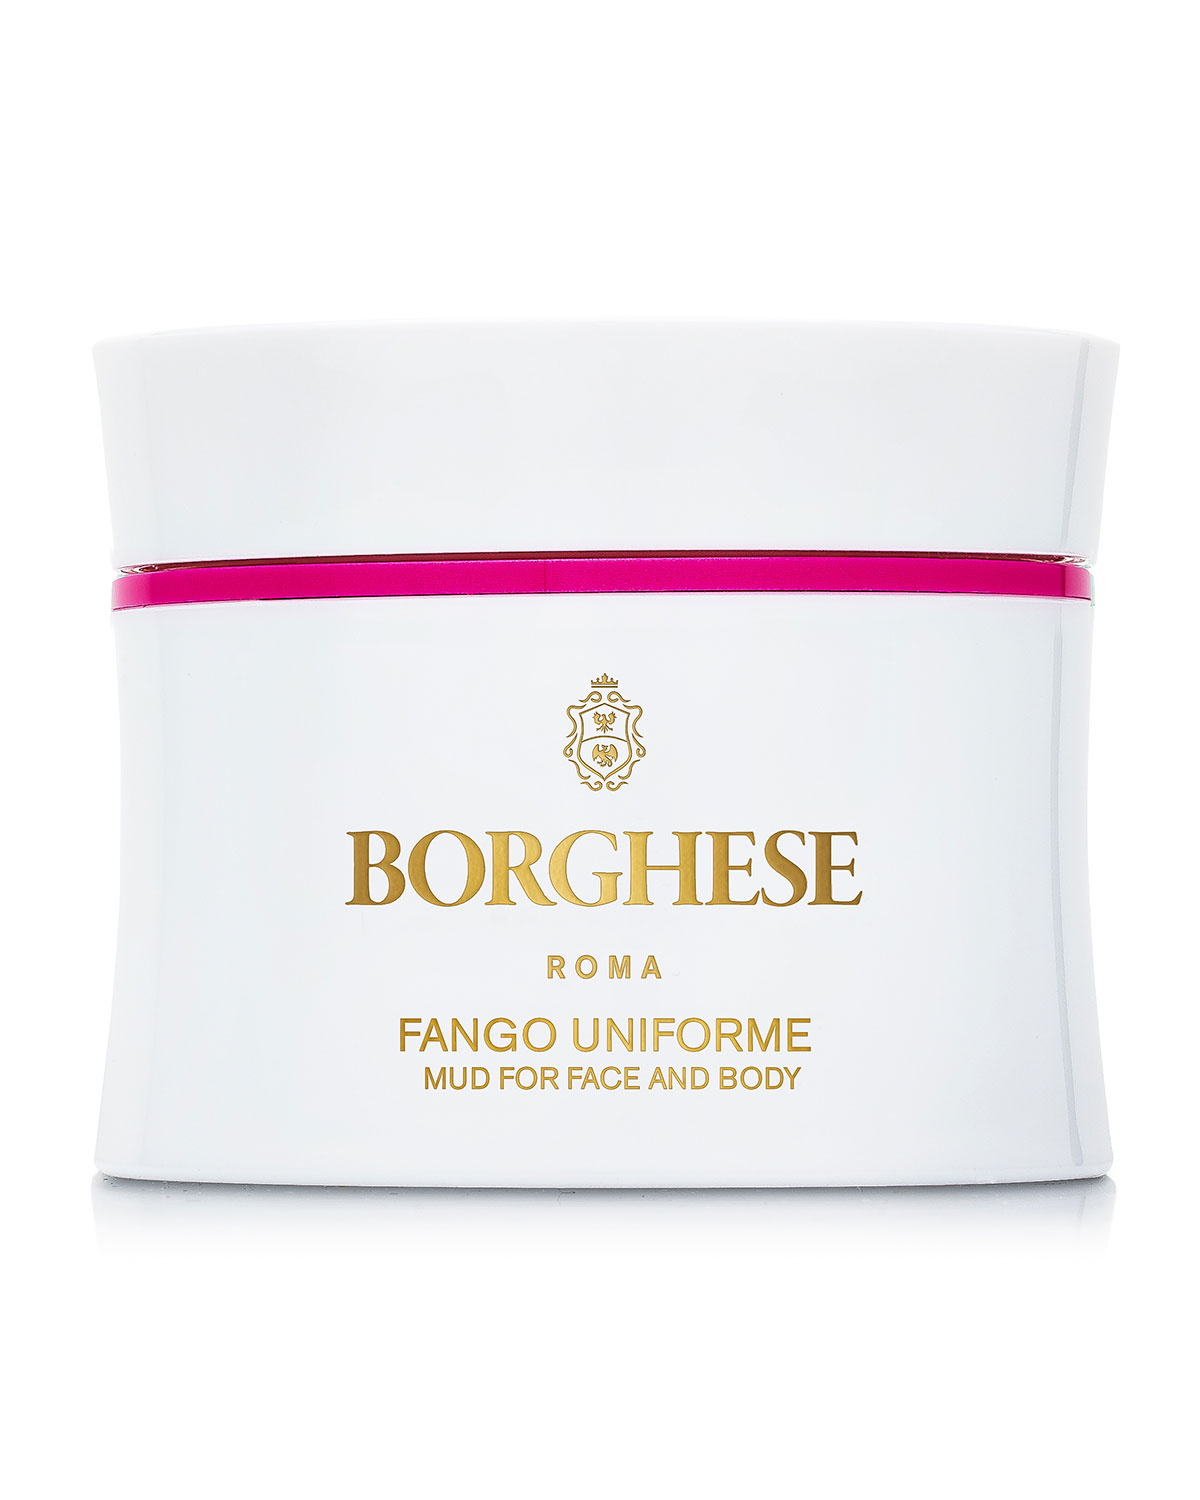 BORGHESE Fango Uniforme Mud For Face And Body, 2.7 Oz.